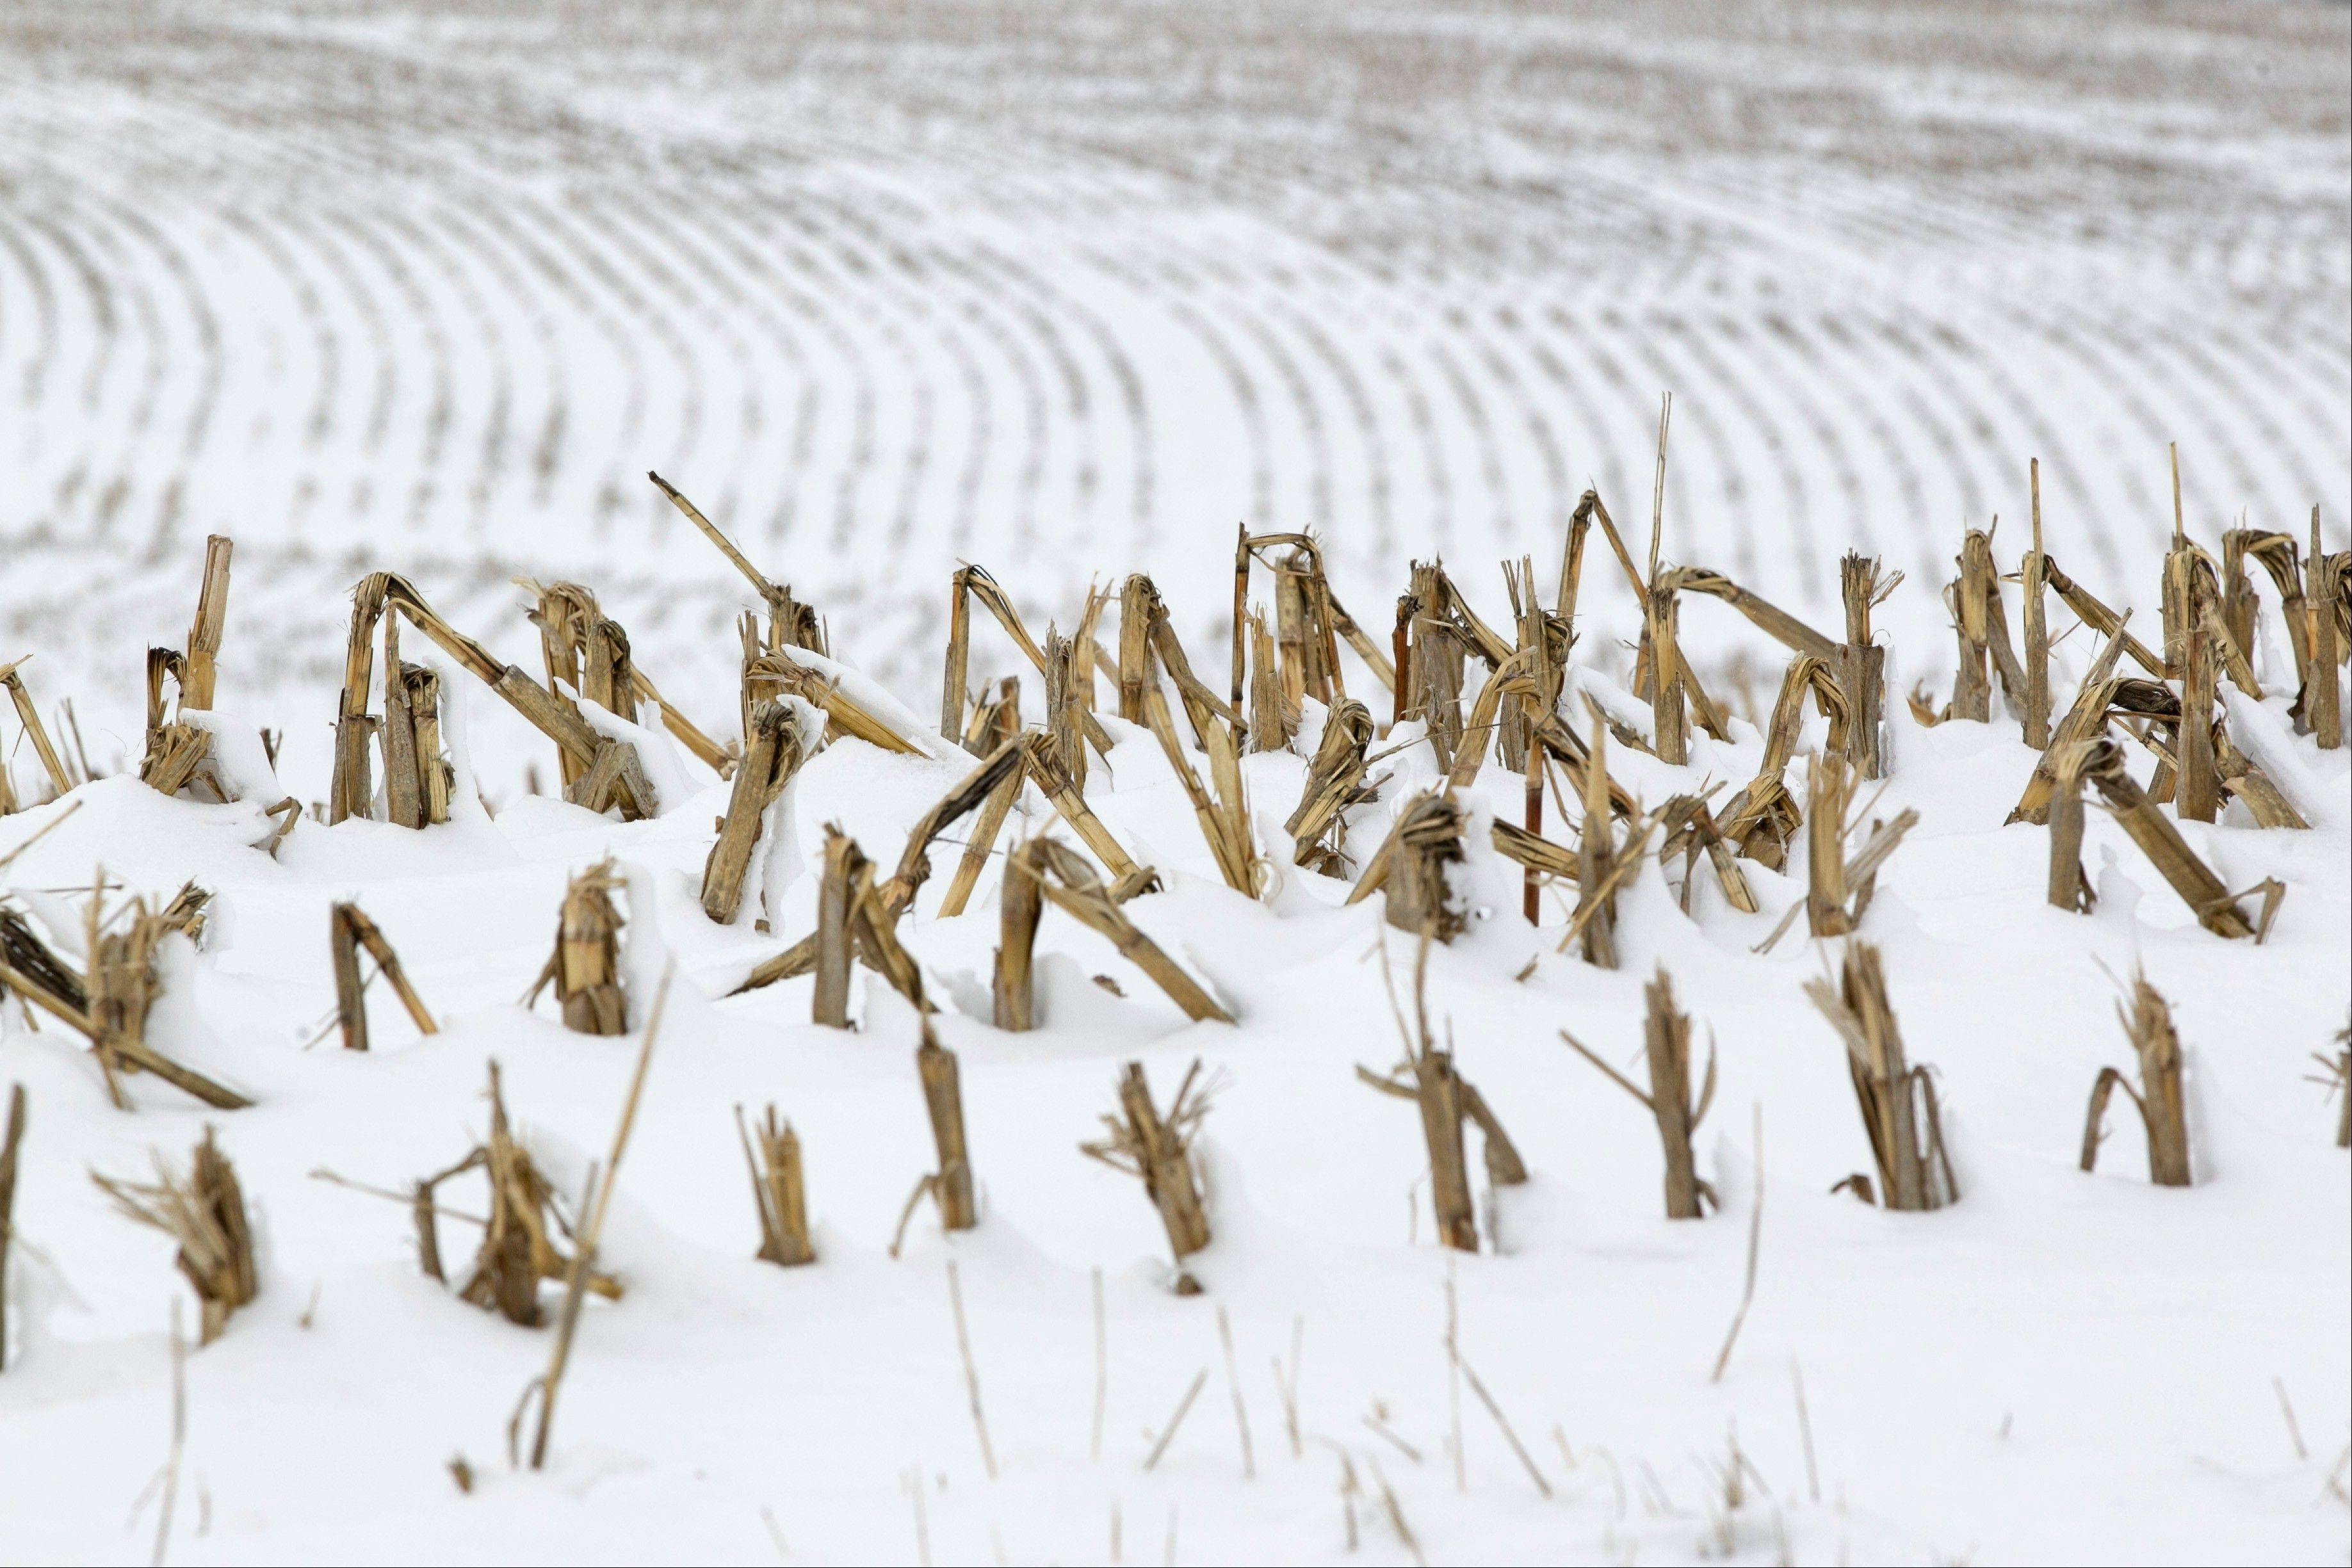 Corn stalks stand in a snowy field near La Vista, Neb. Despite getting some big storms in December, much of the U.S. is still desperate for relief from the nation's longest dry spell in decades. And experts say it will take an absurd amount of snow to ease the woes of farmers and ranchers.